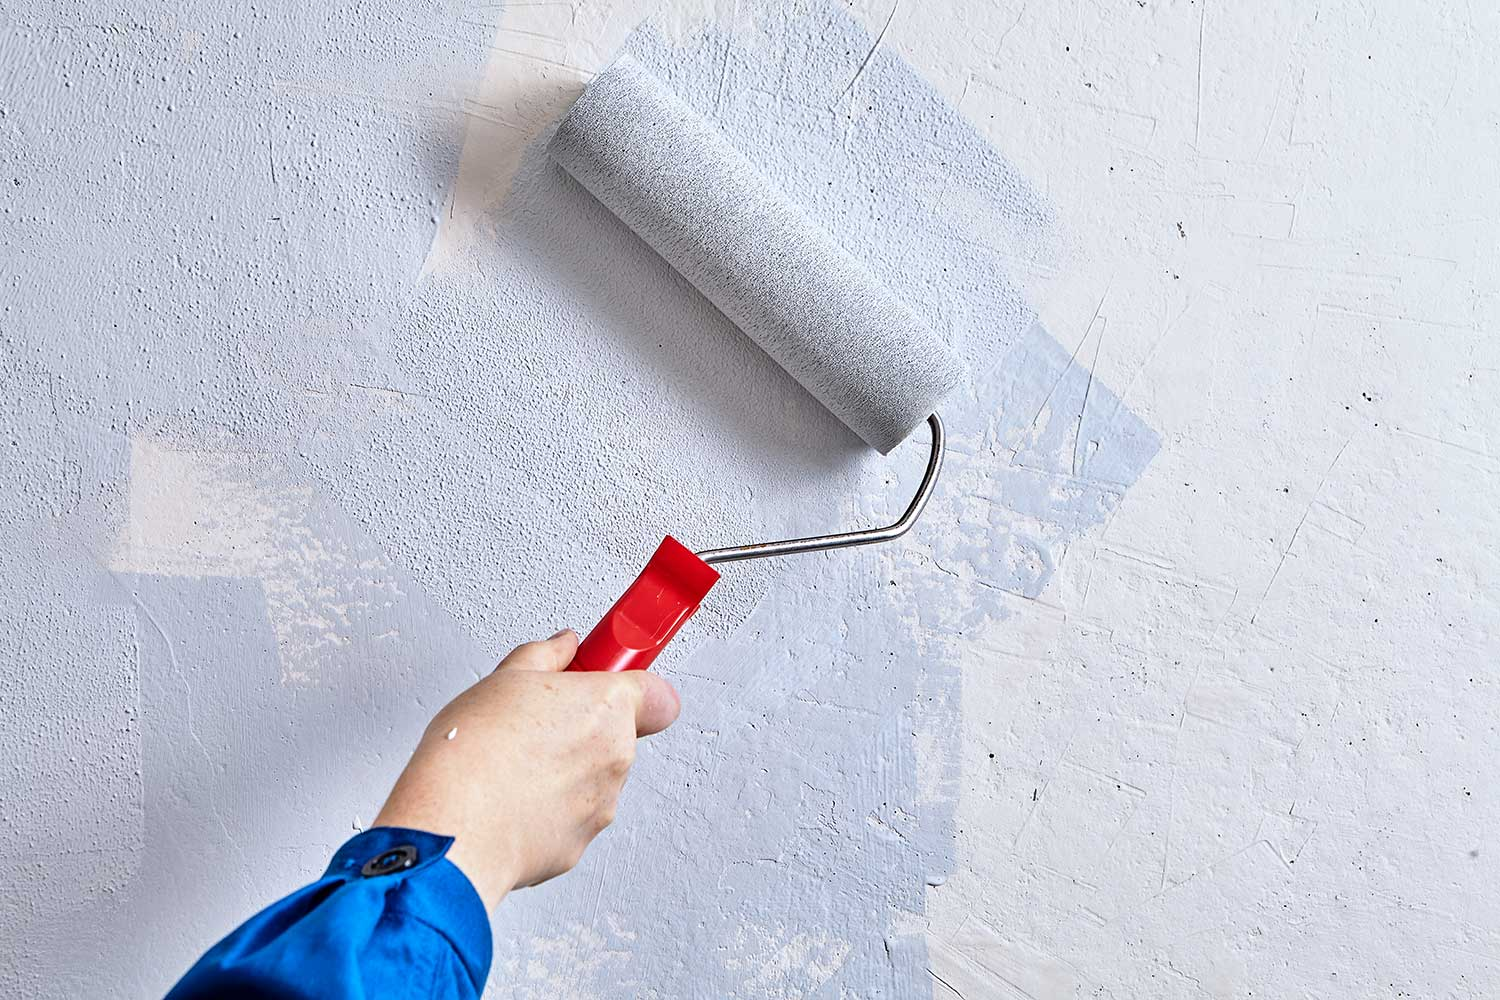 Home painter is painting walls with paint roller